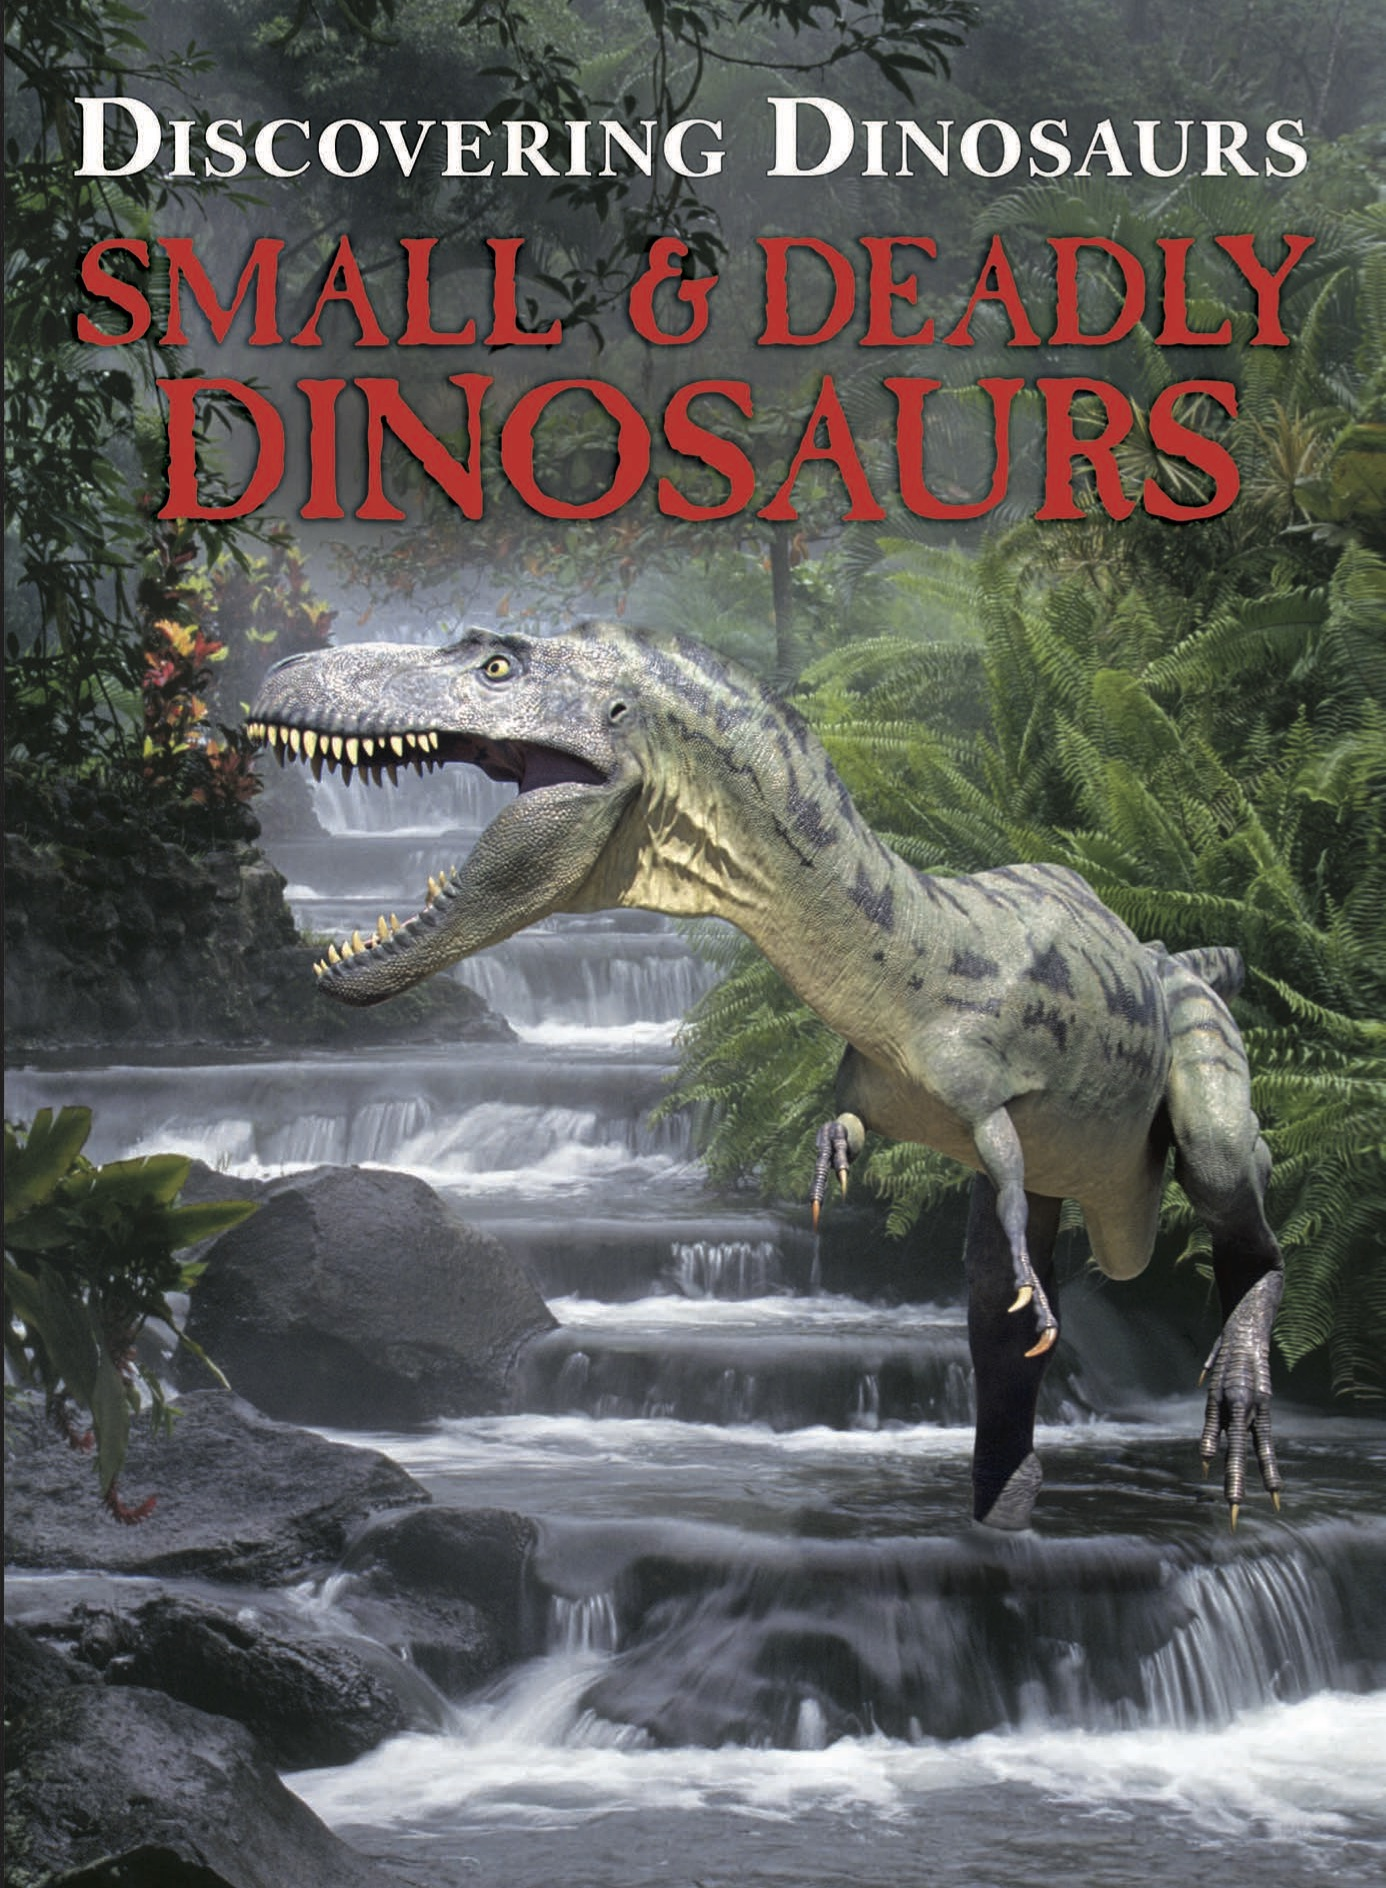 Discovering Dinosaurs: Small and Deadly Dinosaurs